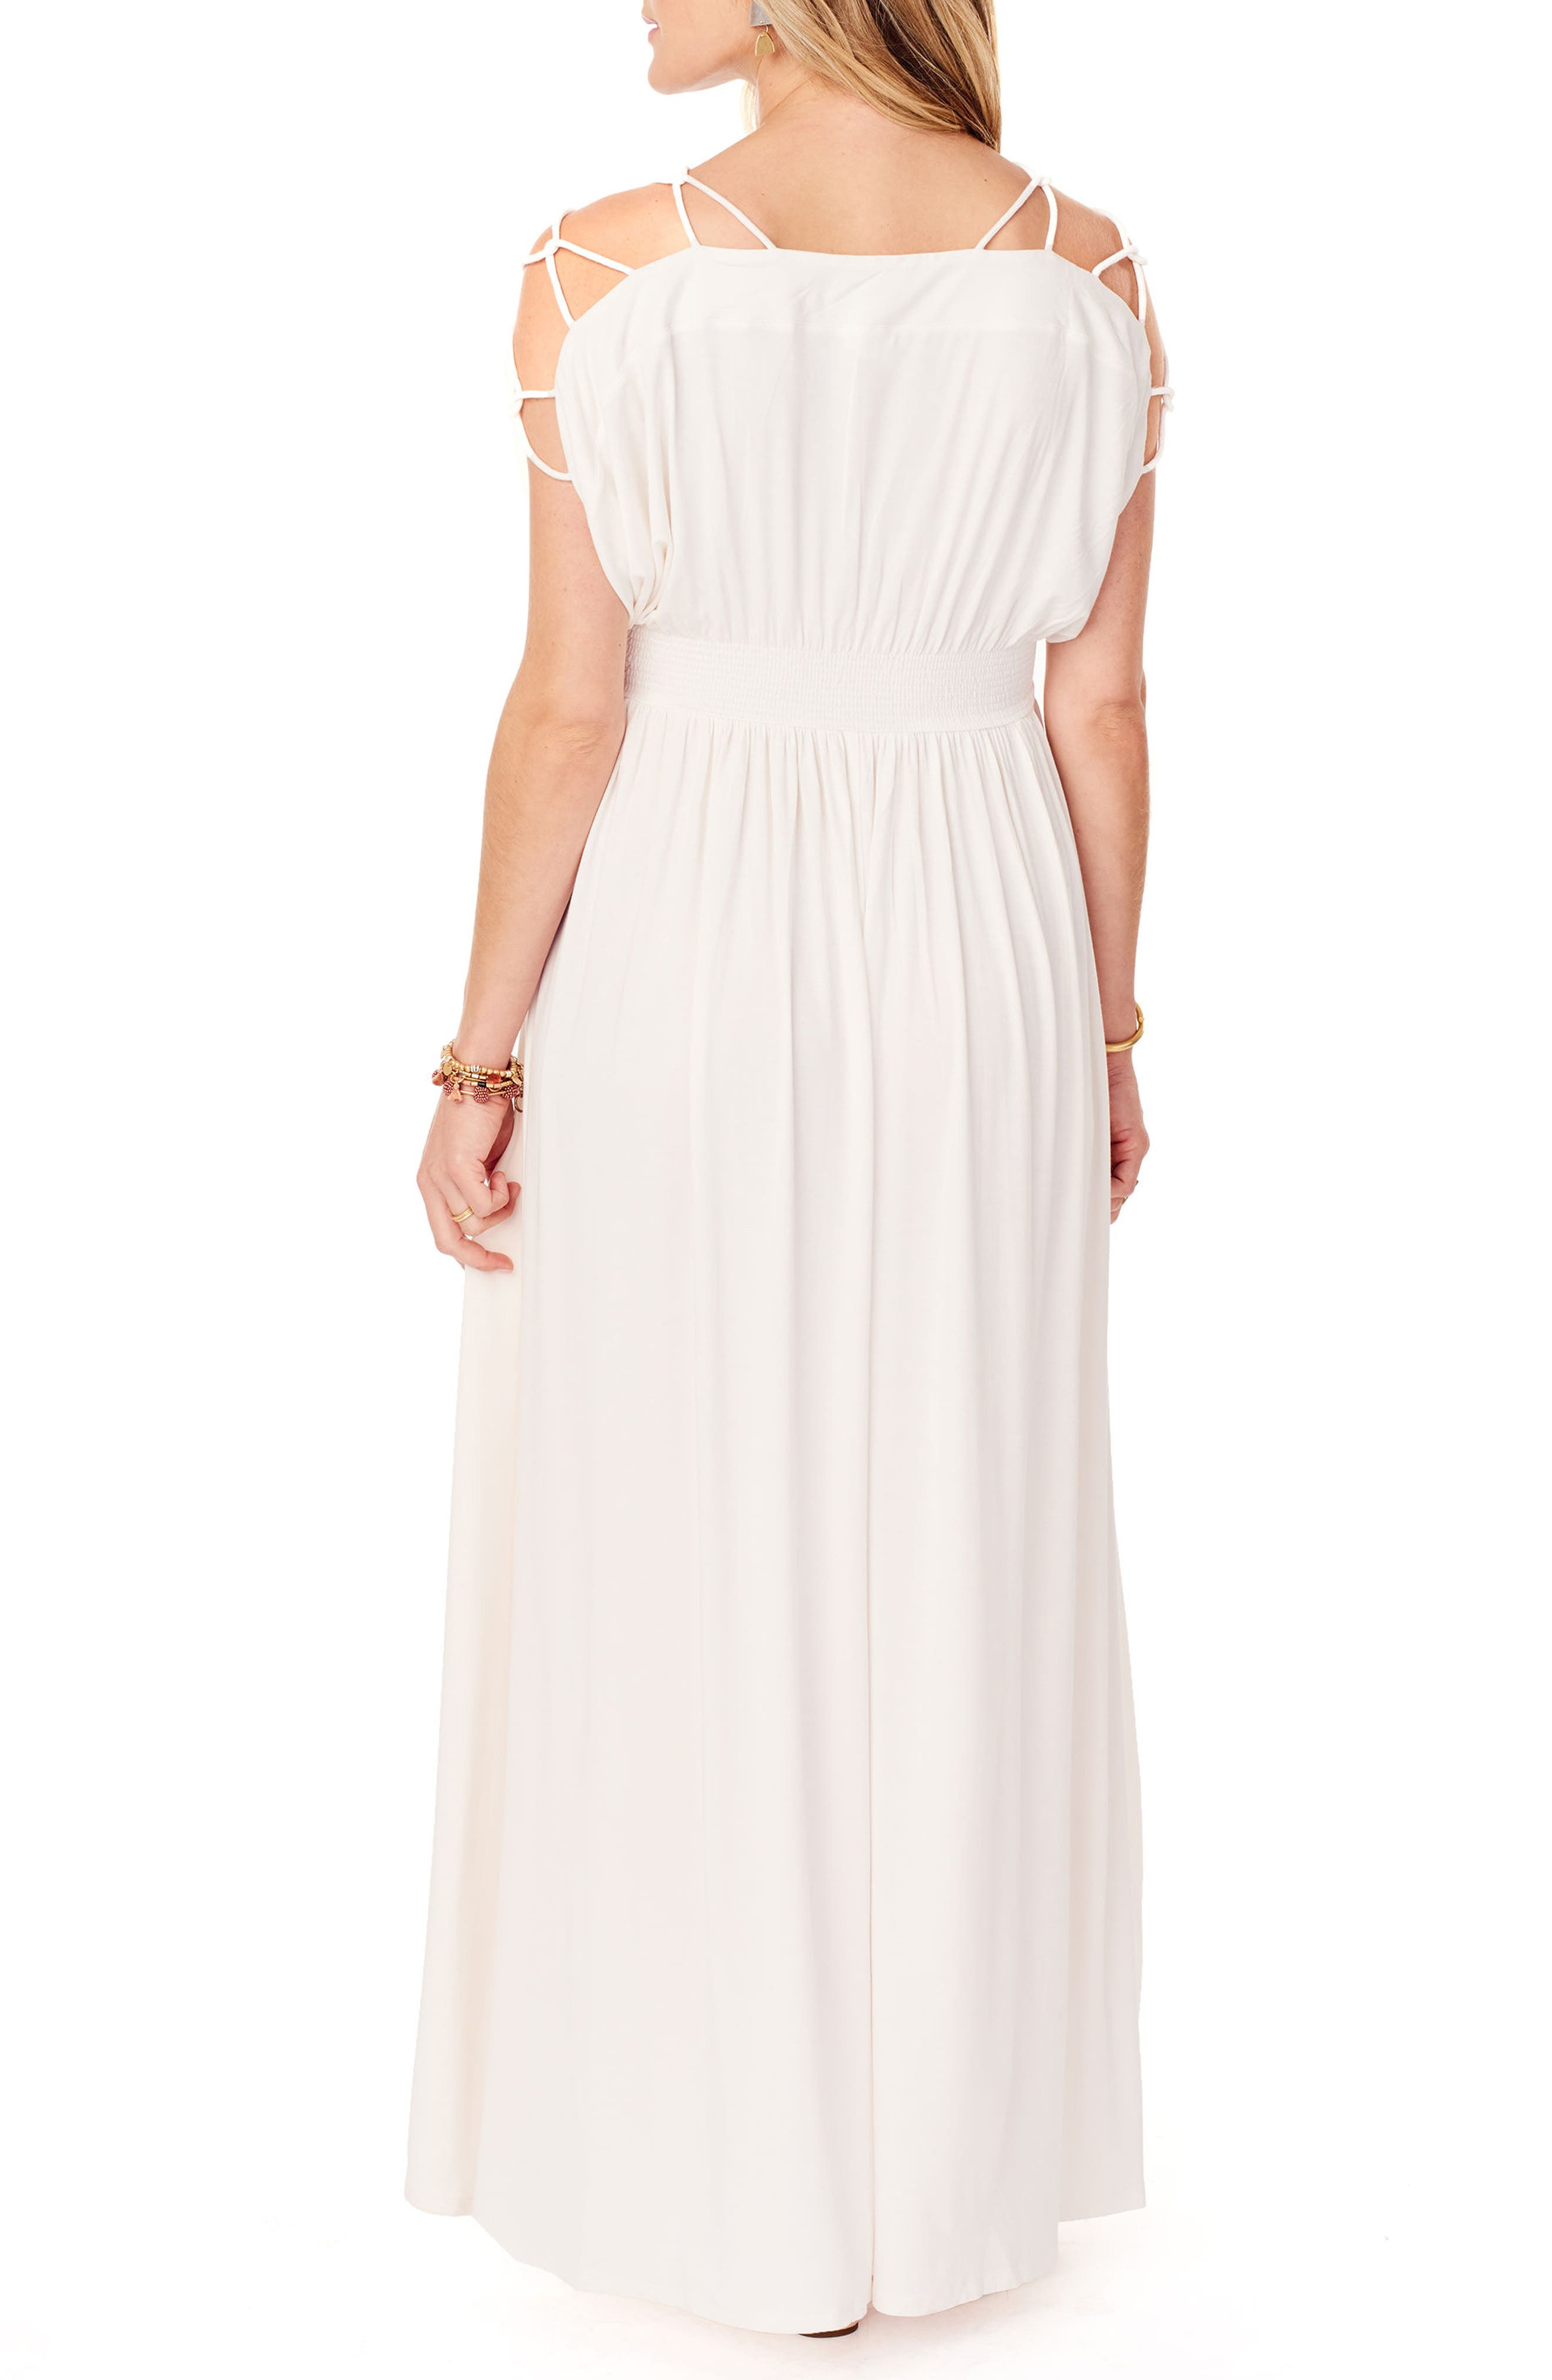 Womens white maternity clothing nordstrom ombrellifo Image collections